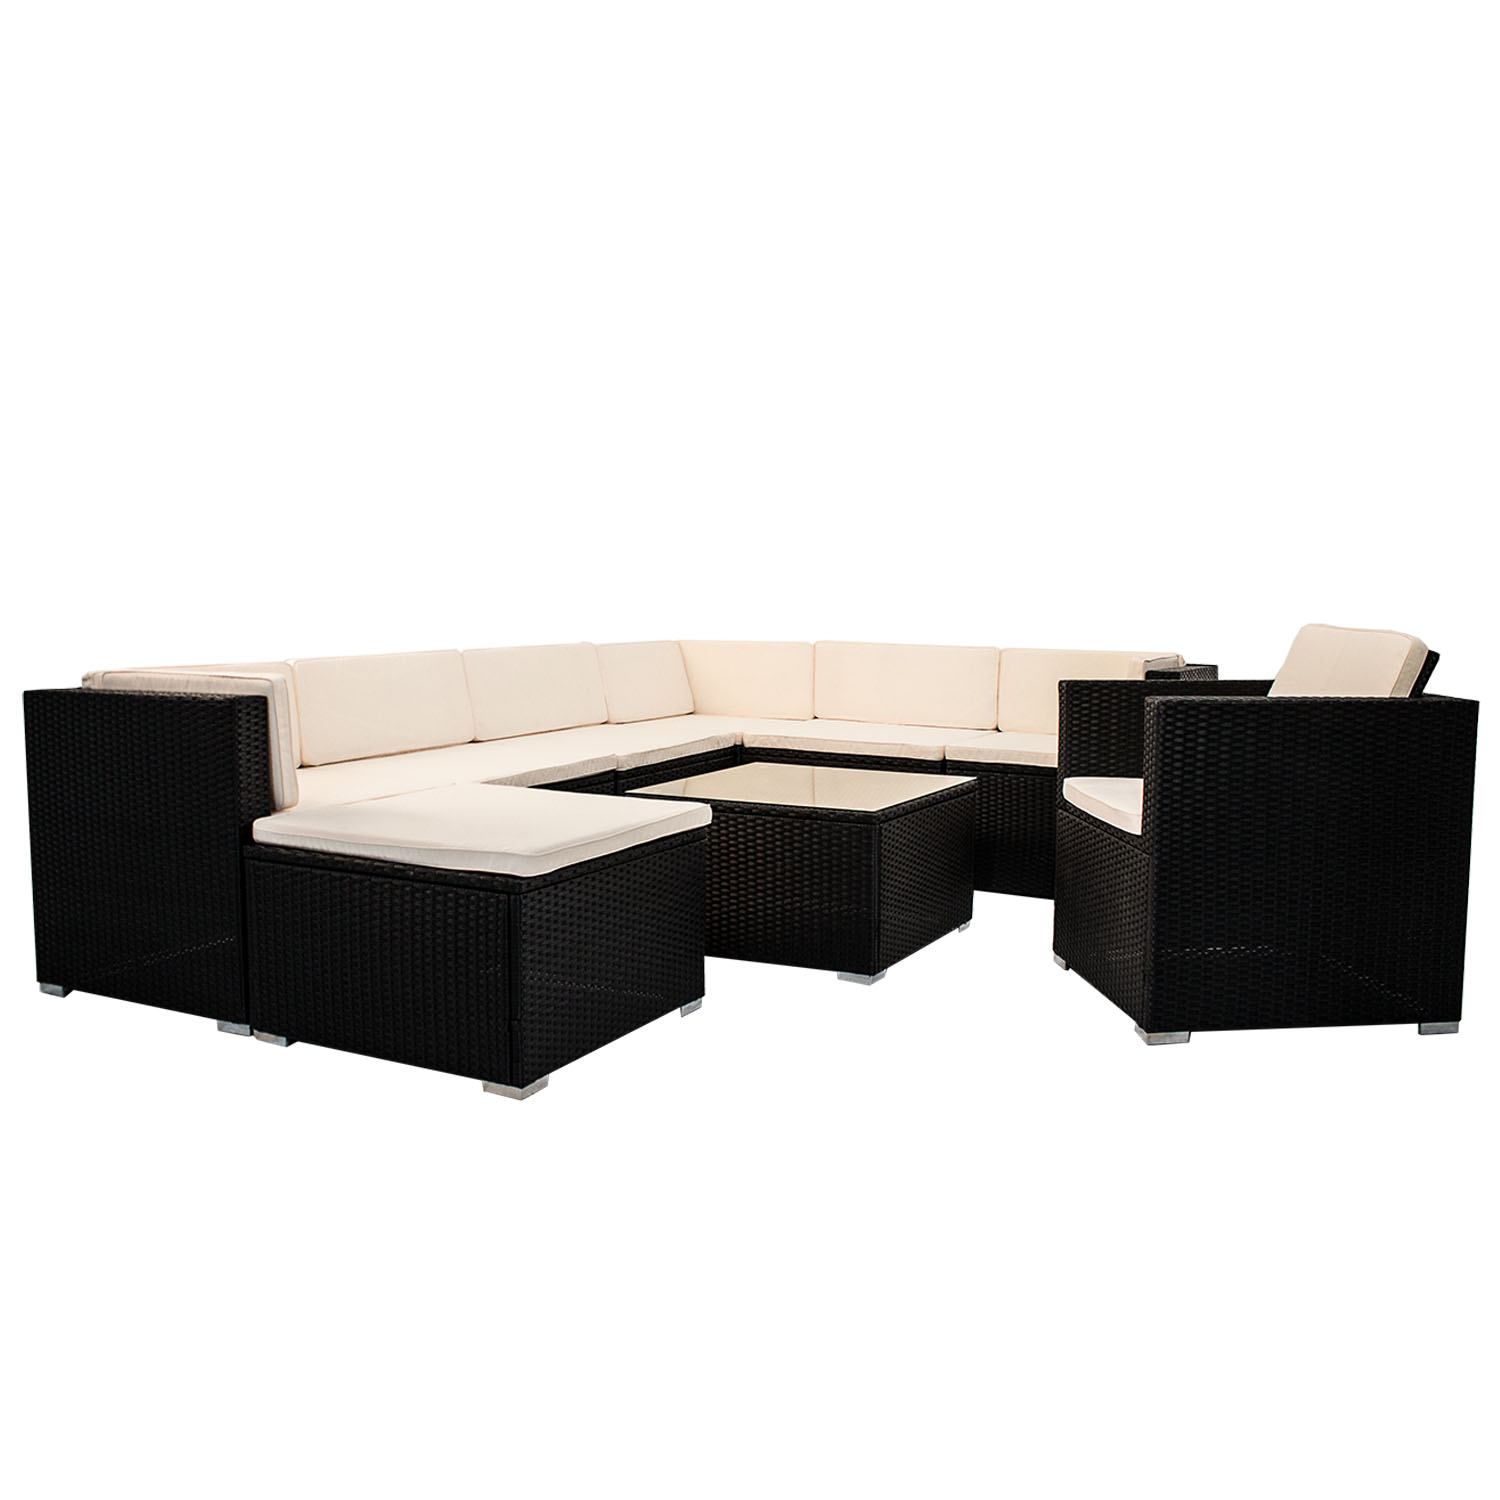 polyrattan gartenm bel lounge rattan gartenset poly. Black Bedroom Furniture Sets. Home Design Ideas